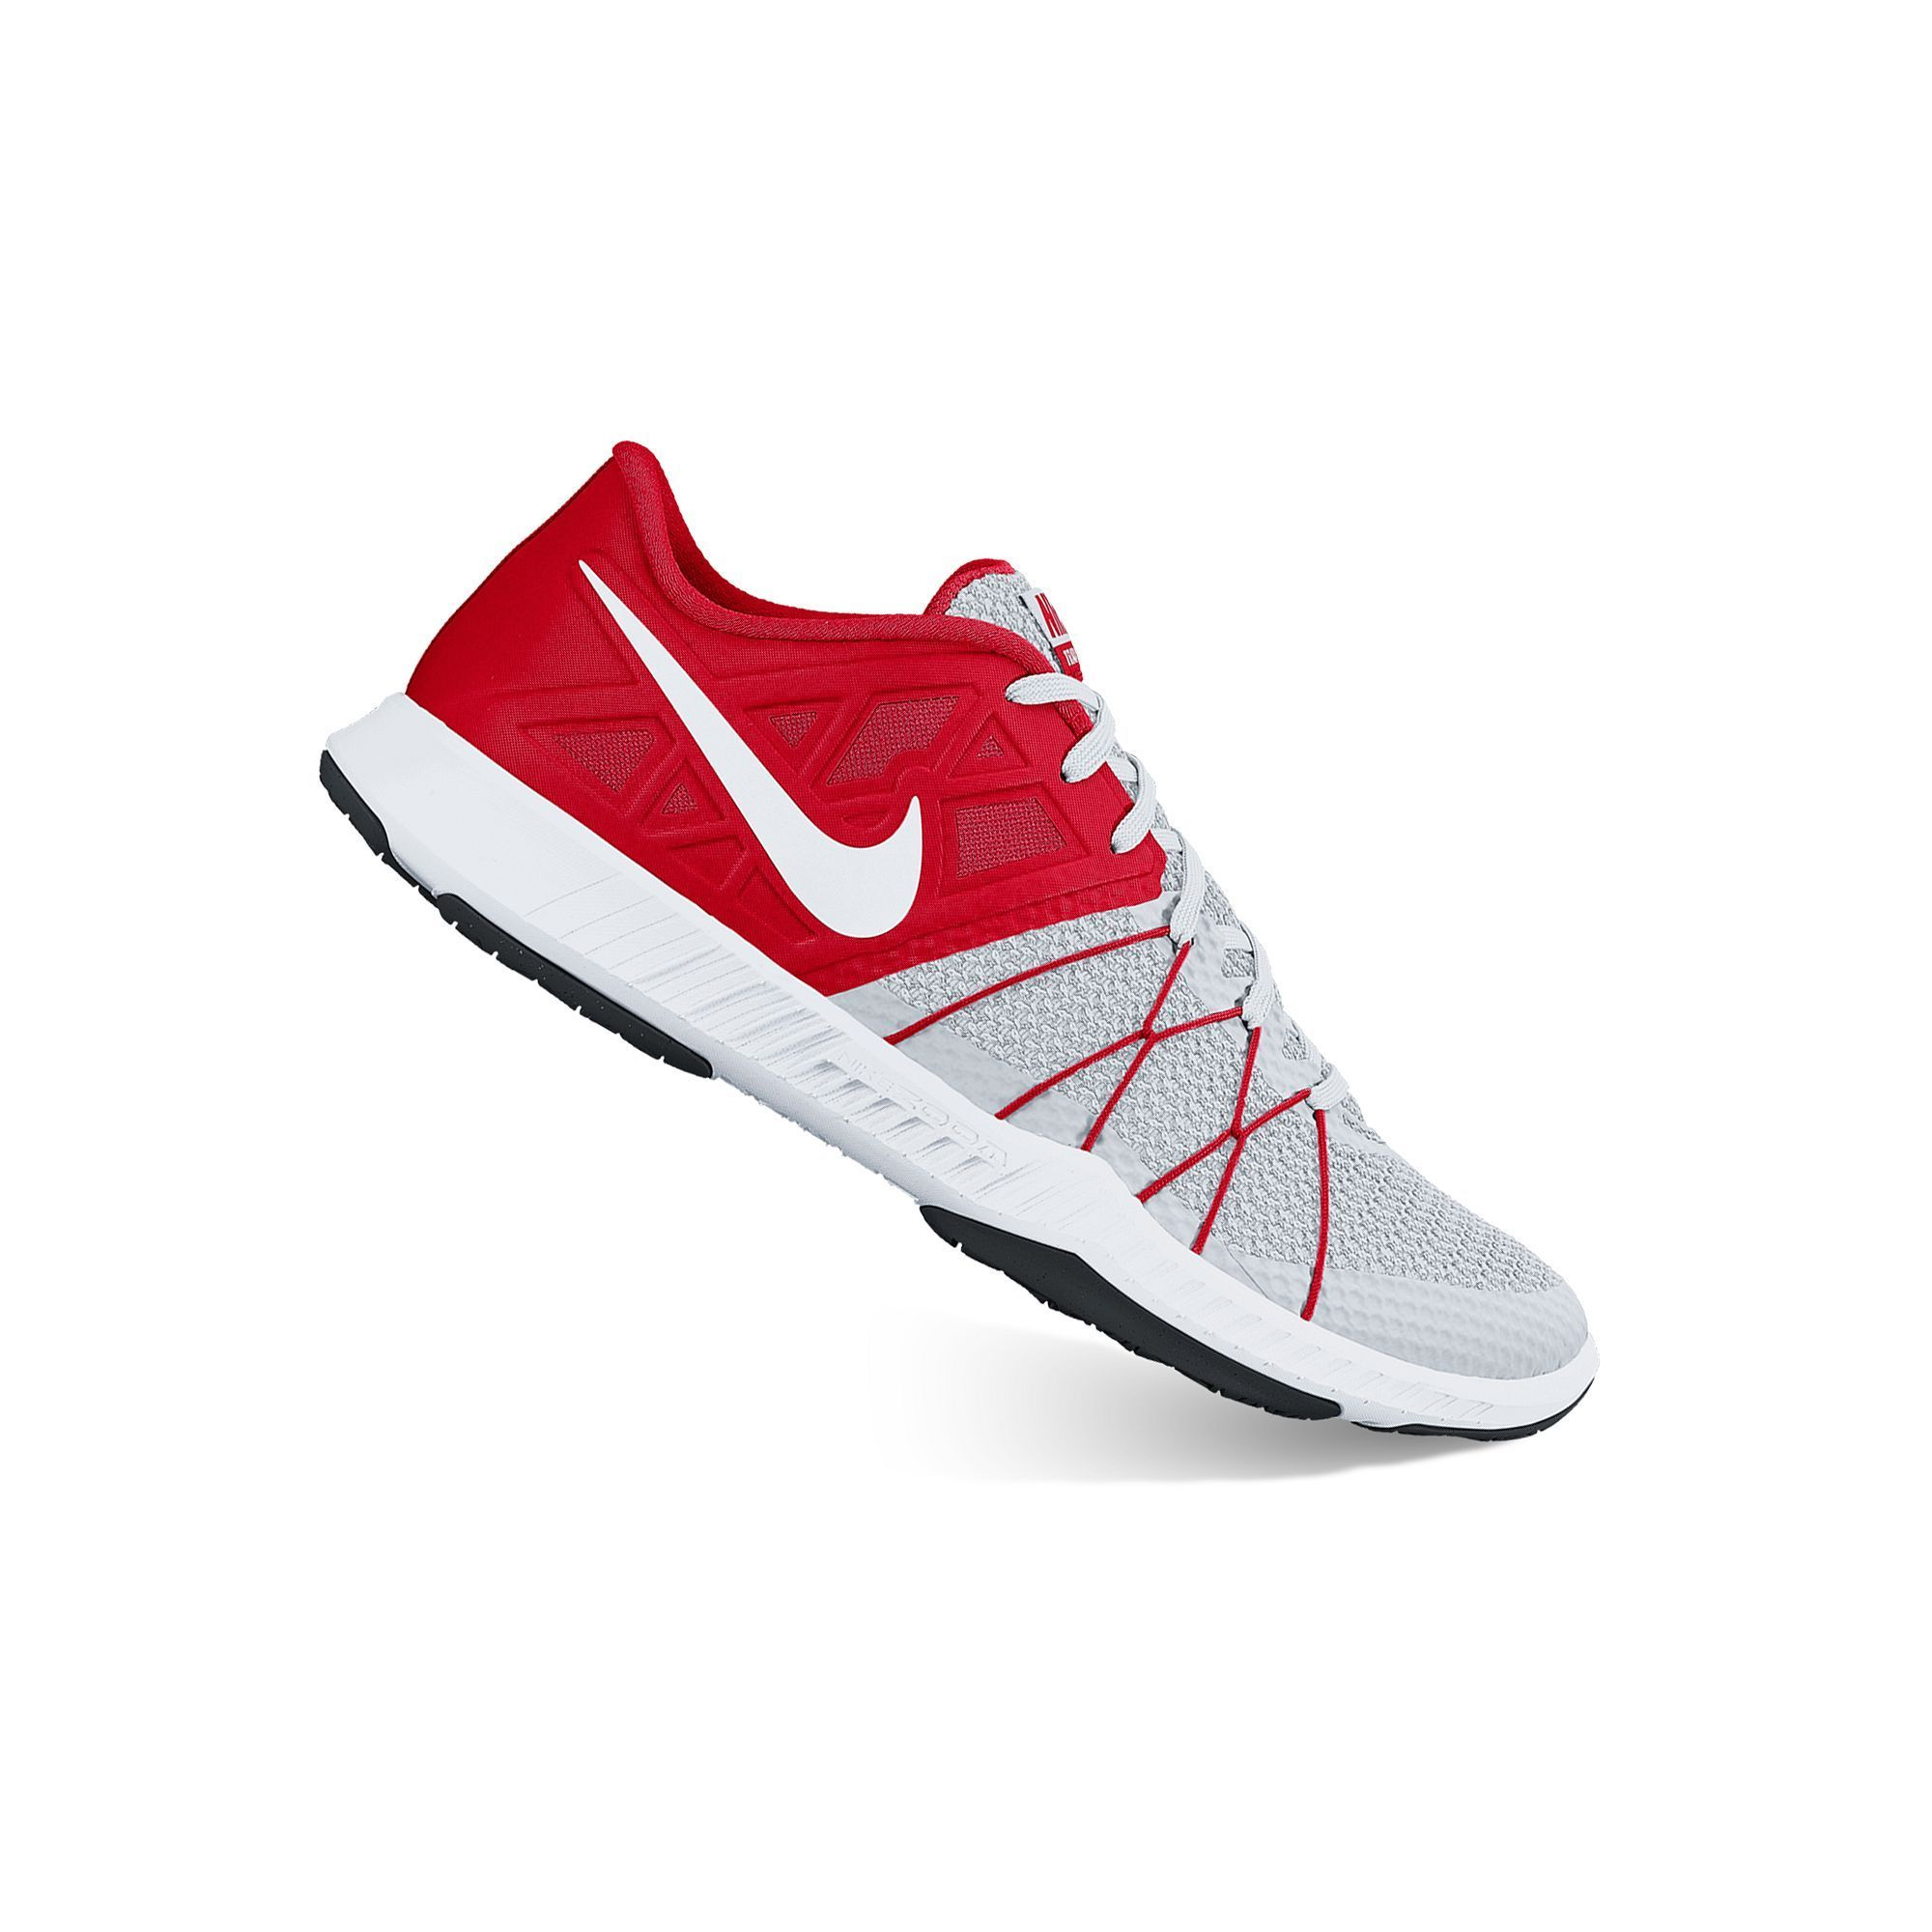 best sneakers c47d3 44cde Nike Zoom Train Incredibly Fast Men s Training Shoes, Size  10.5, Dark Red